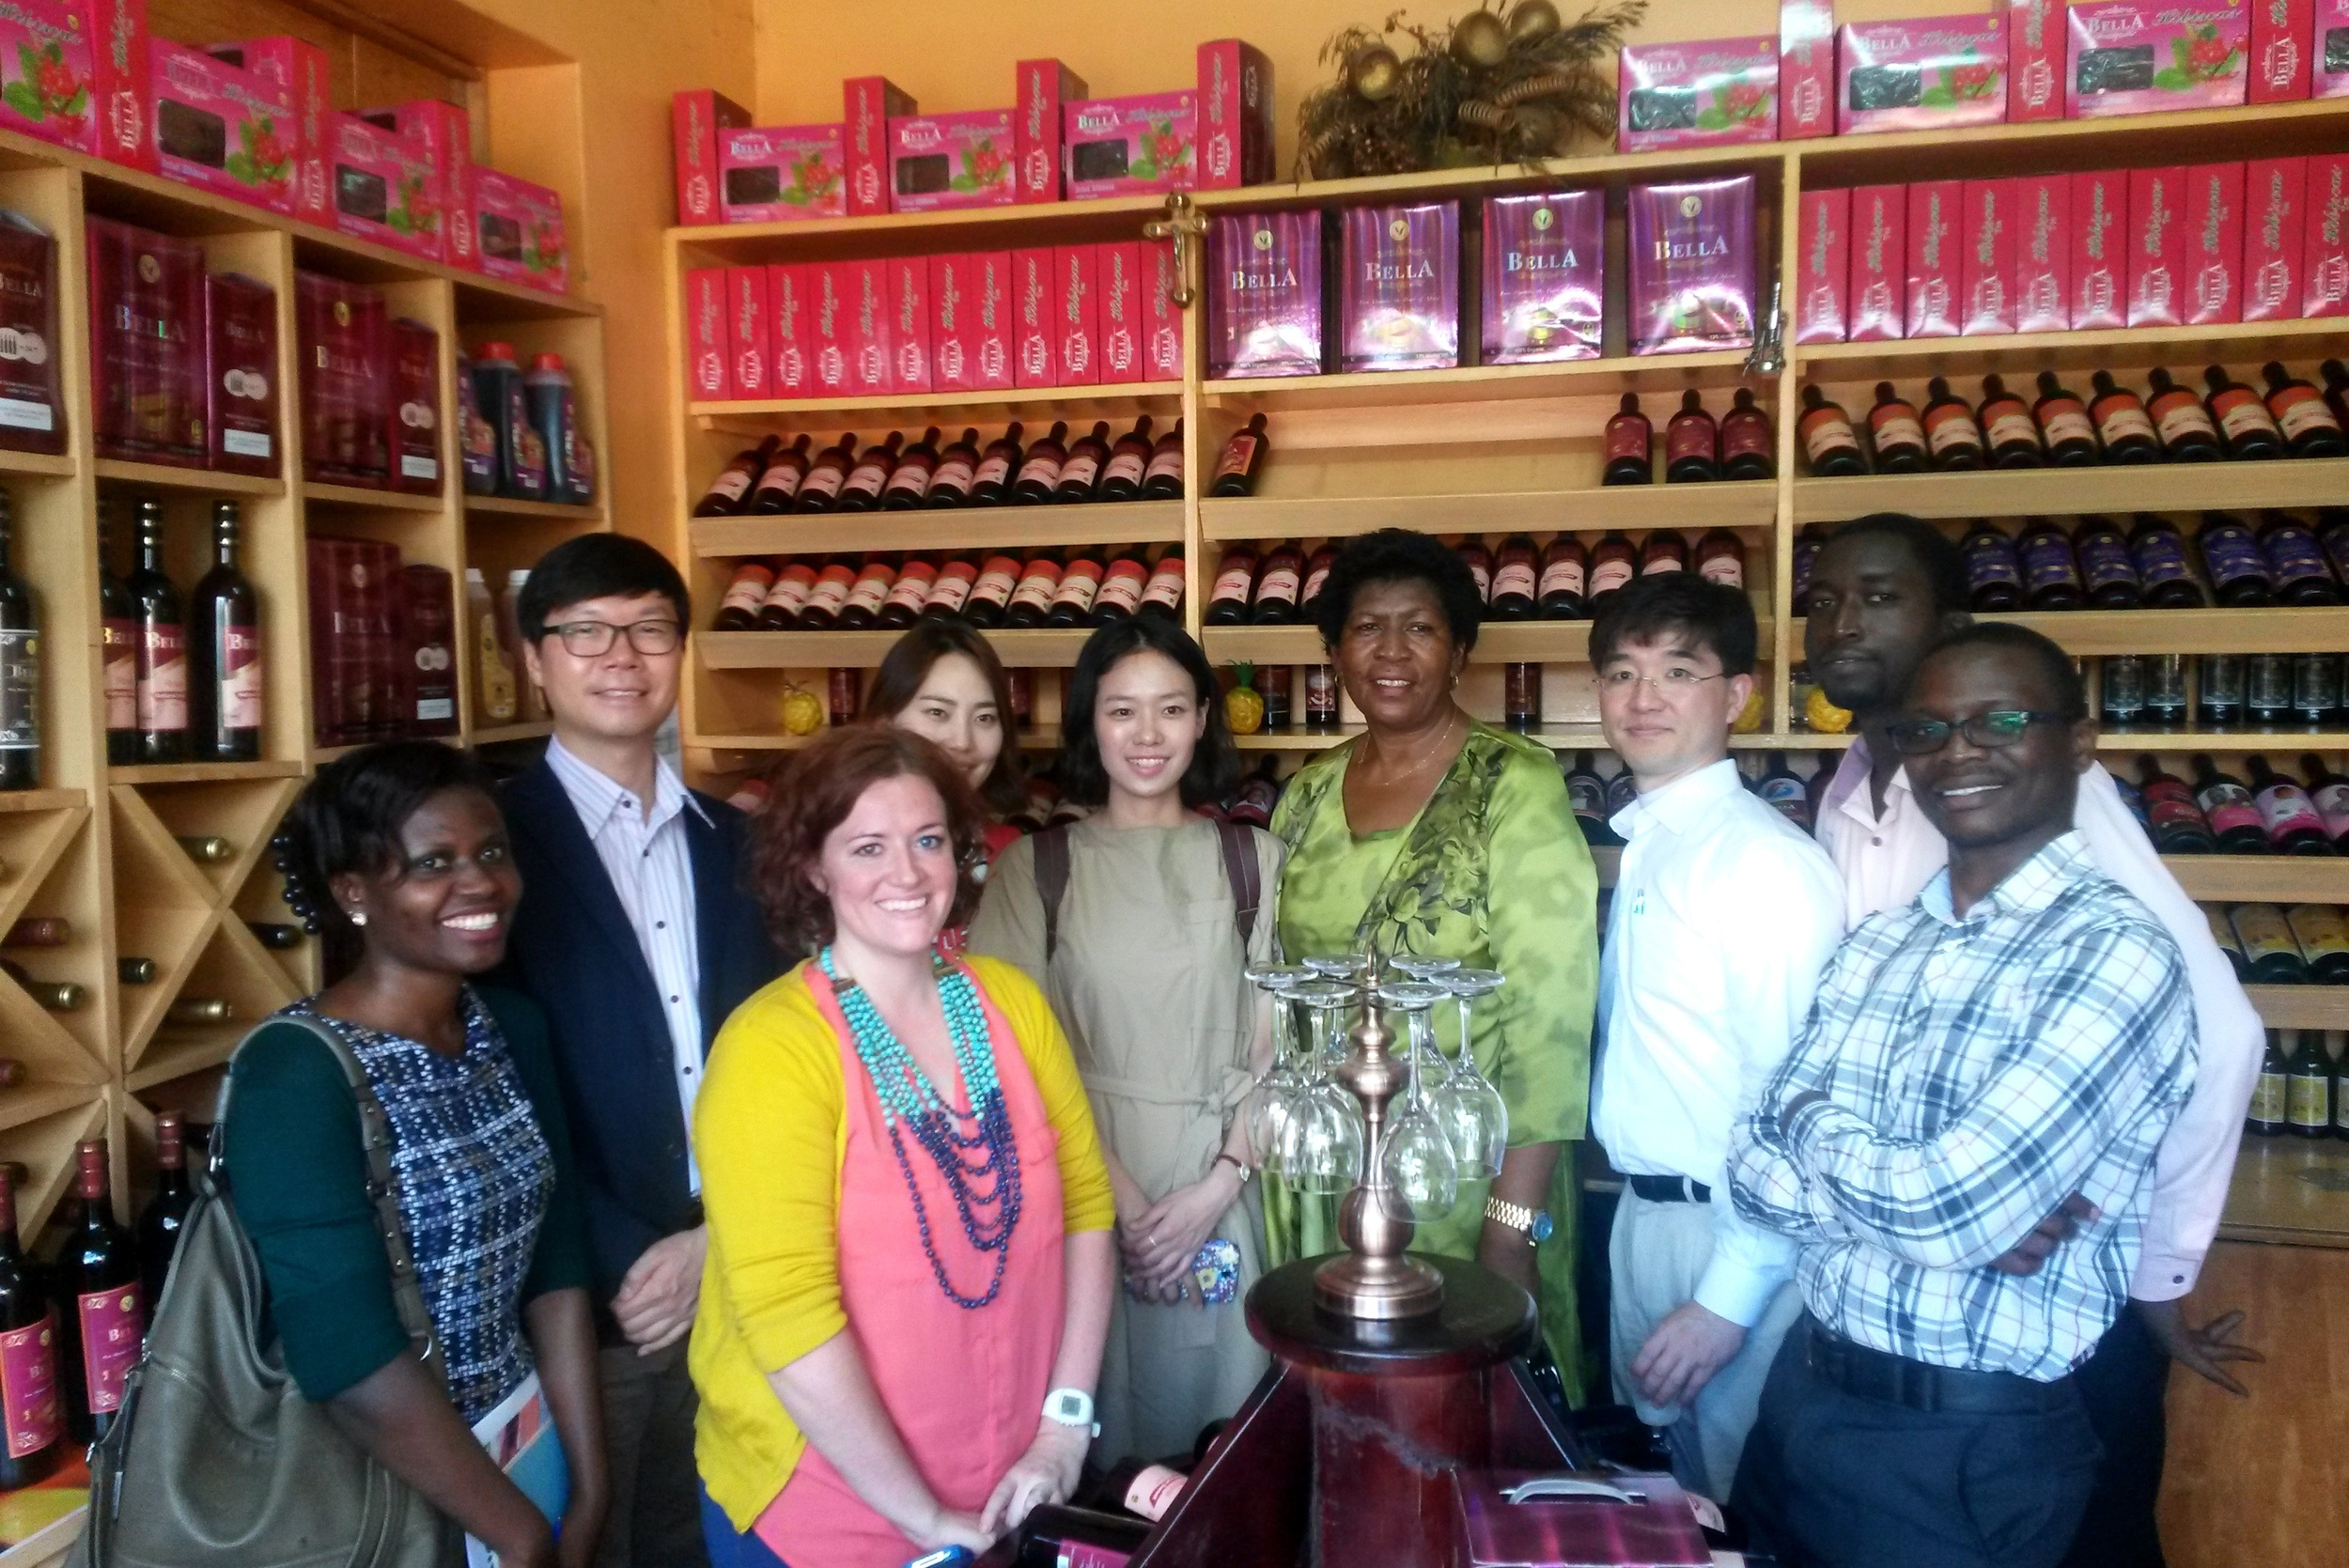 The KOICA-Mango Fund team with Prudence Ukkonika, the owner of K-Roma, client of the KOICA-Mango Fund joint program, in the Bella Wine shop.